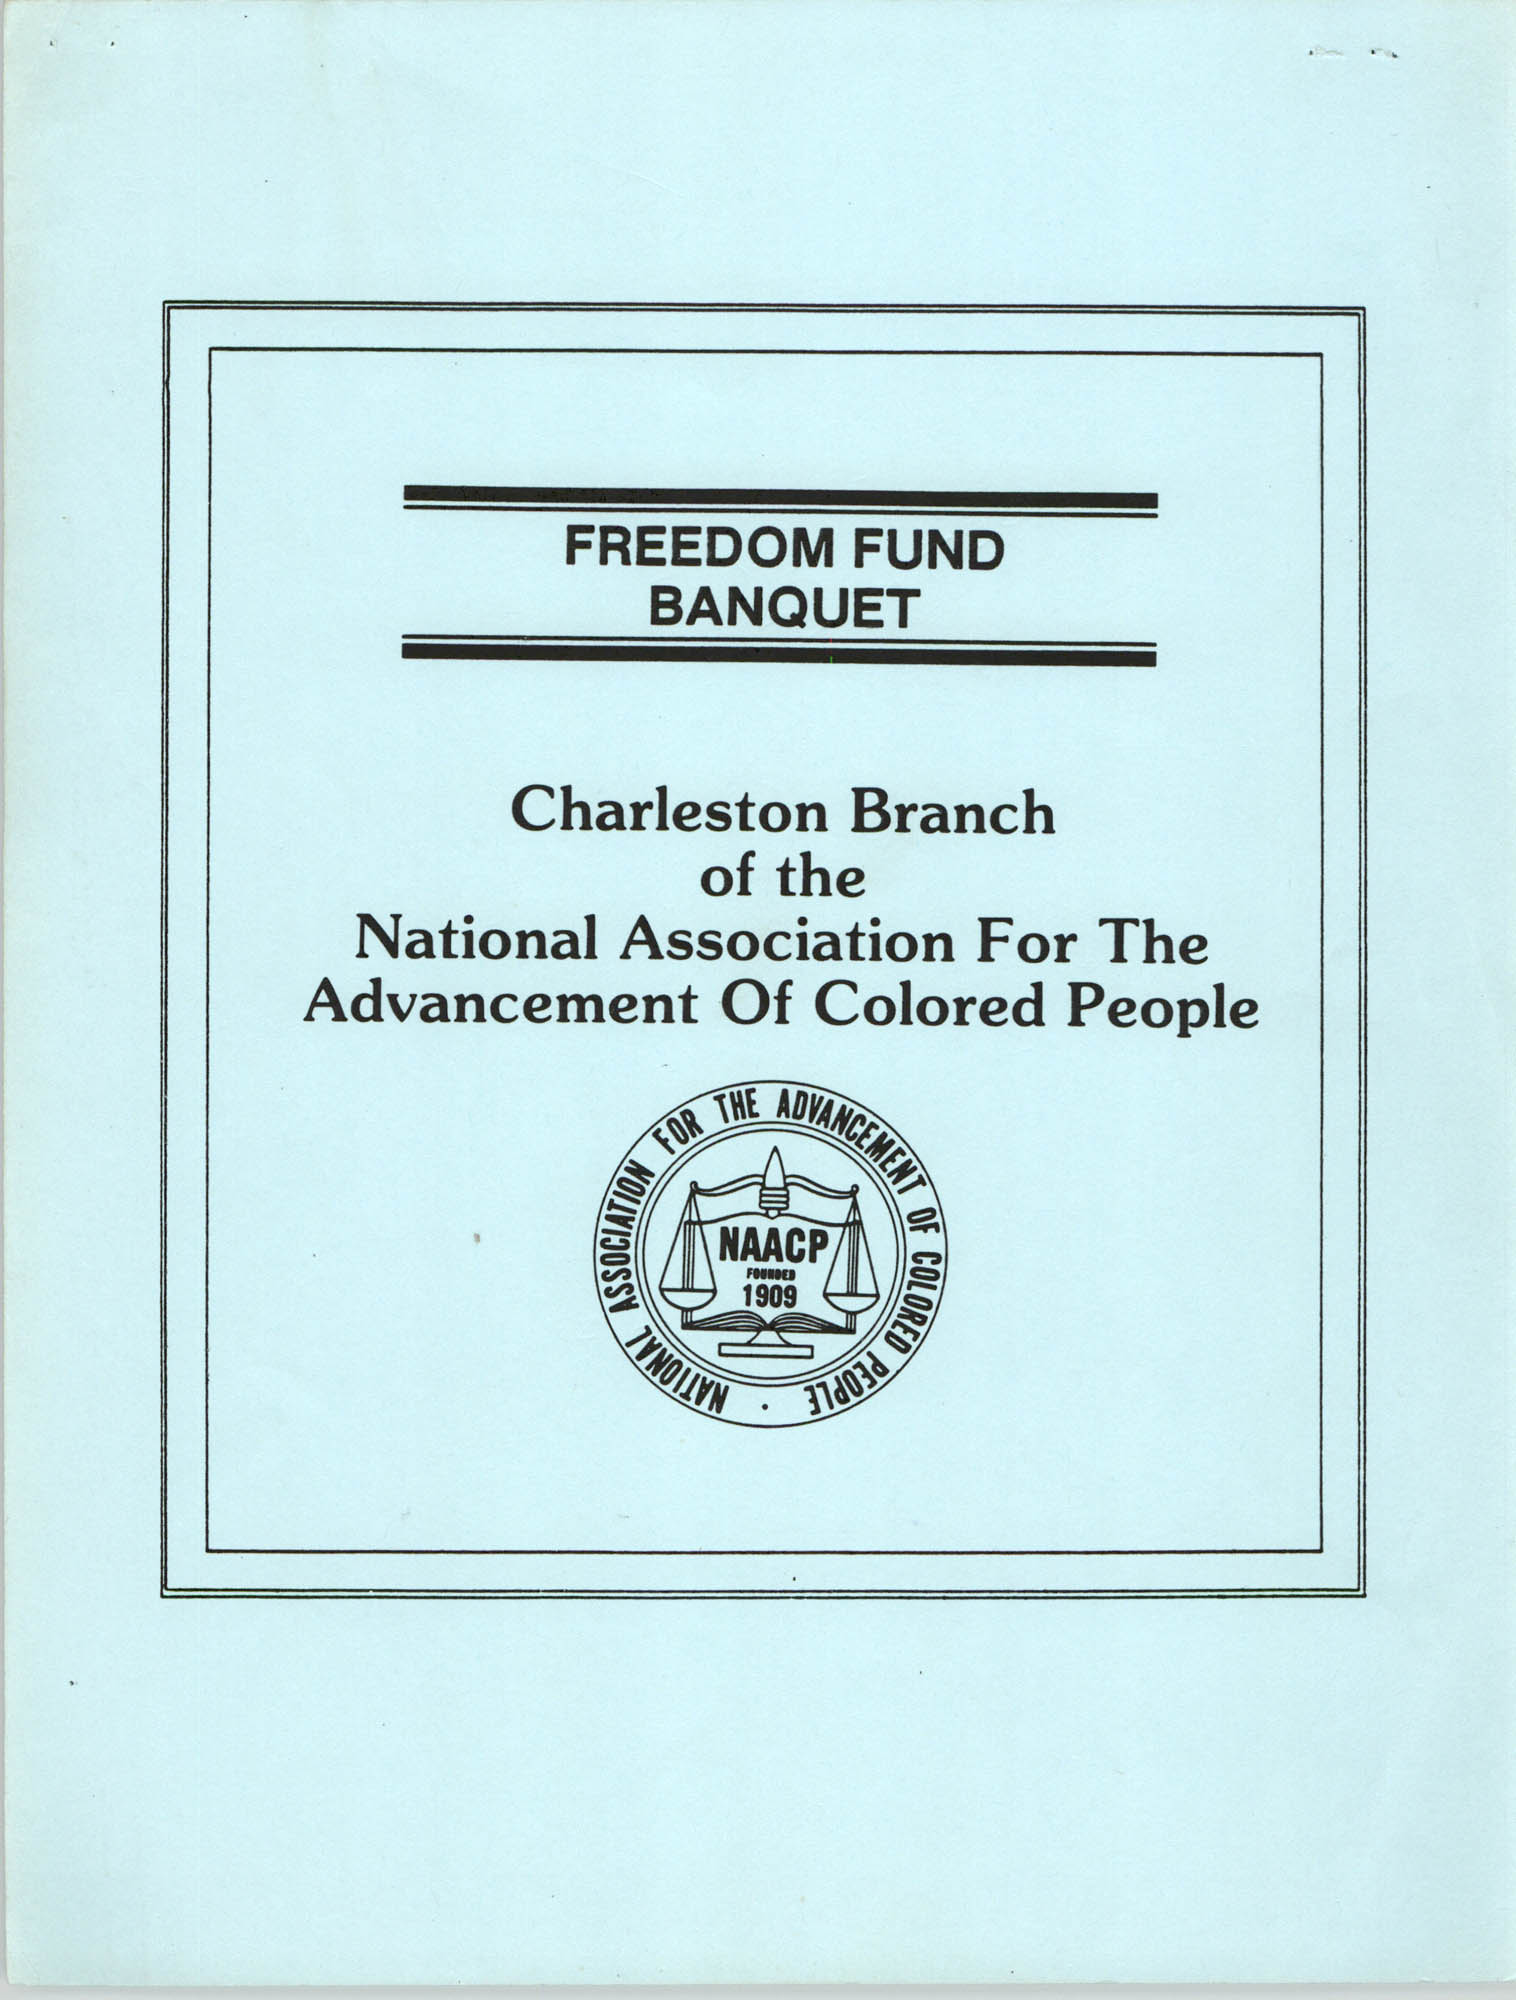 Flyers, 1990 Freedom Fund Banquet, Charleston Branch of the NAACP